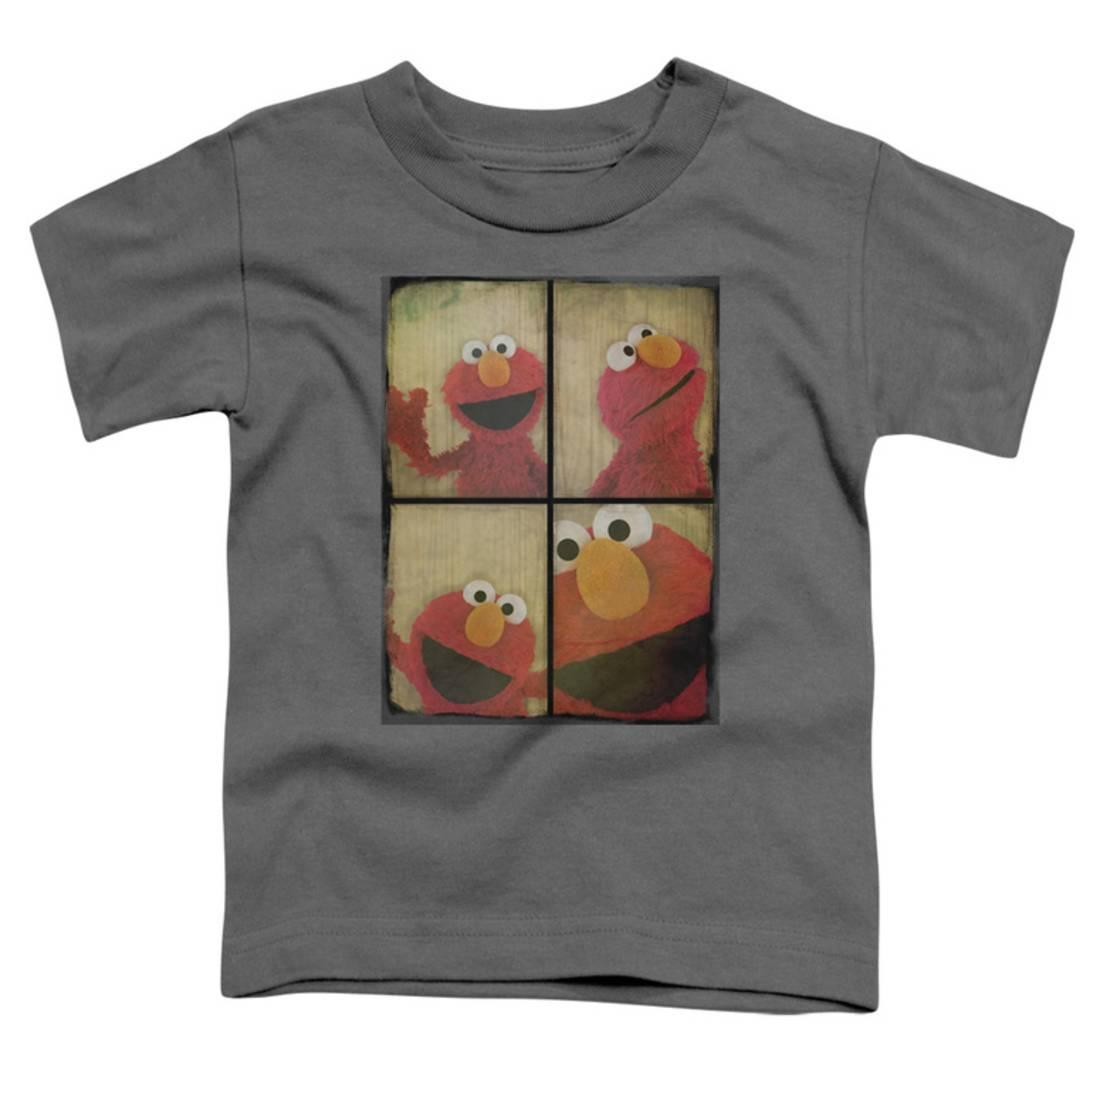 Find sesame street t-shirts for adults